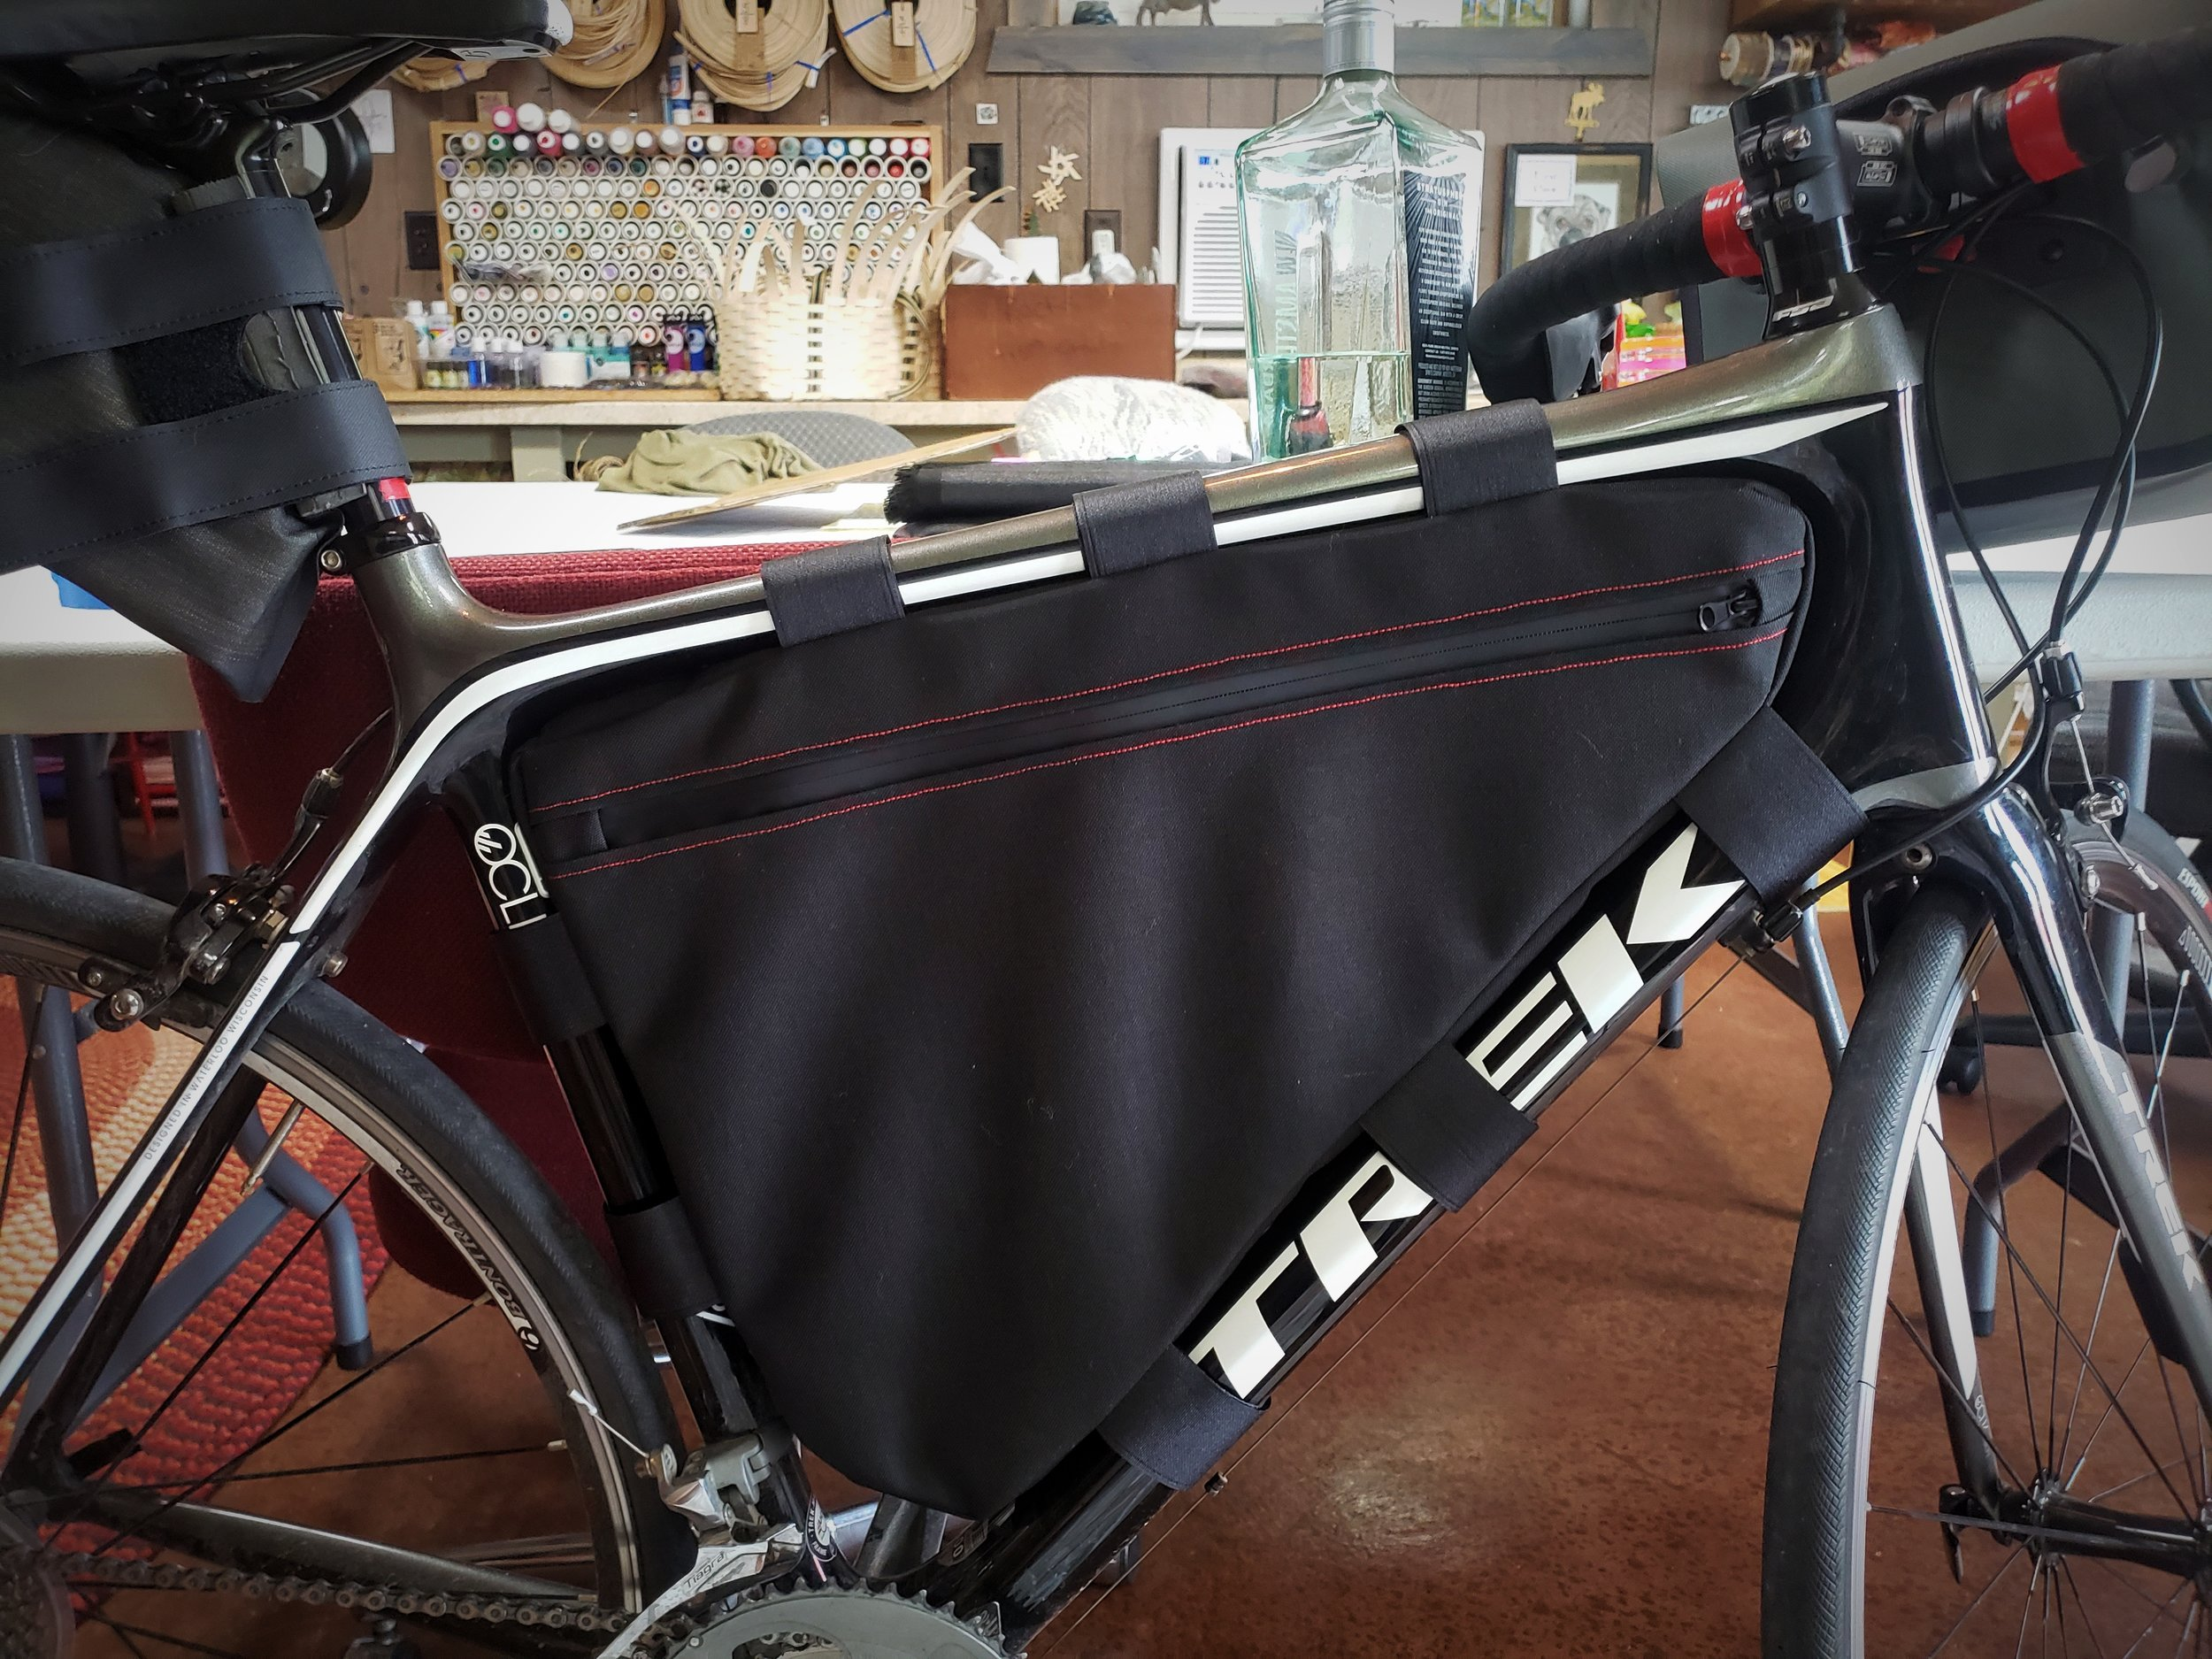 How to Sew a DIY Frame Pack for Your Bike